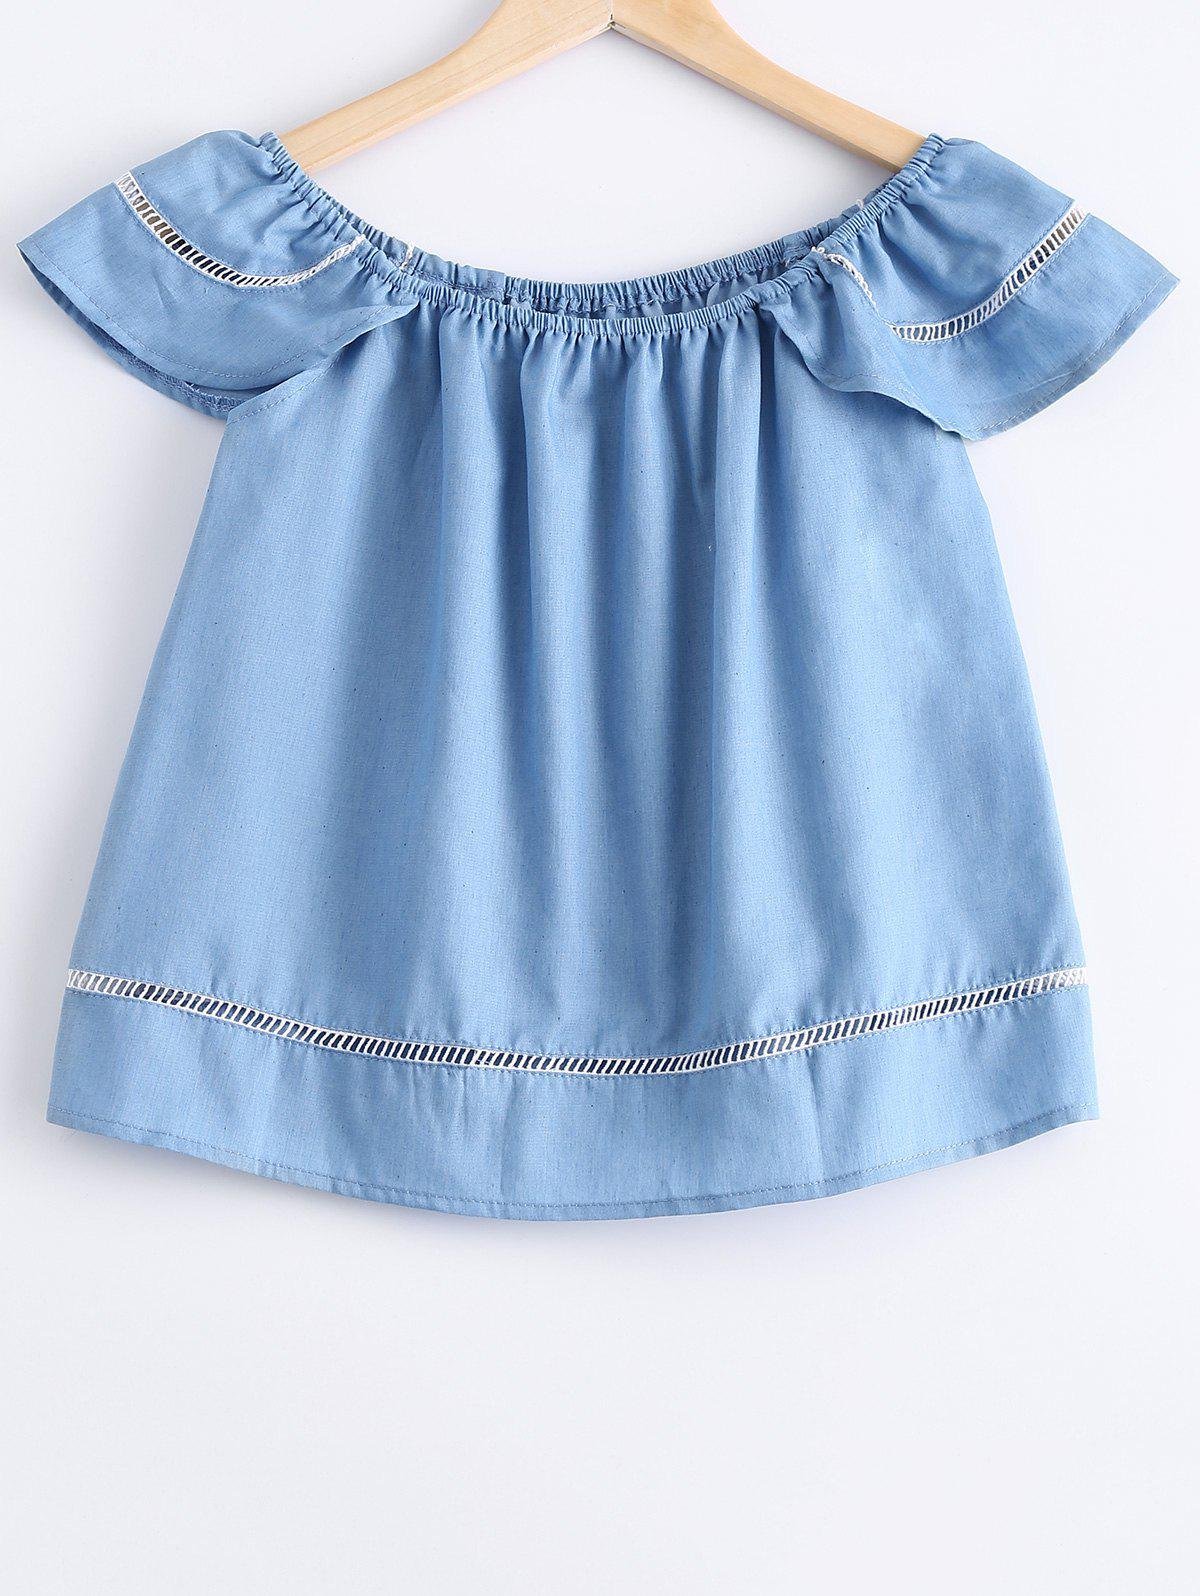 Simplel Womens ScoopNeck Short Sleeves TopWomen<br><br><br>Size: ONE SIZE(FIT SIZE XS TO M)<br>Color: LIGHT BLUE